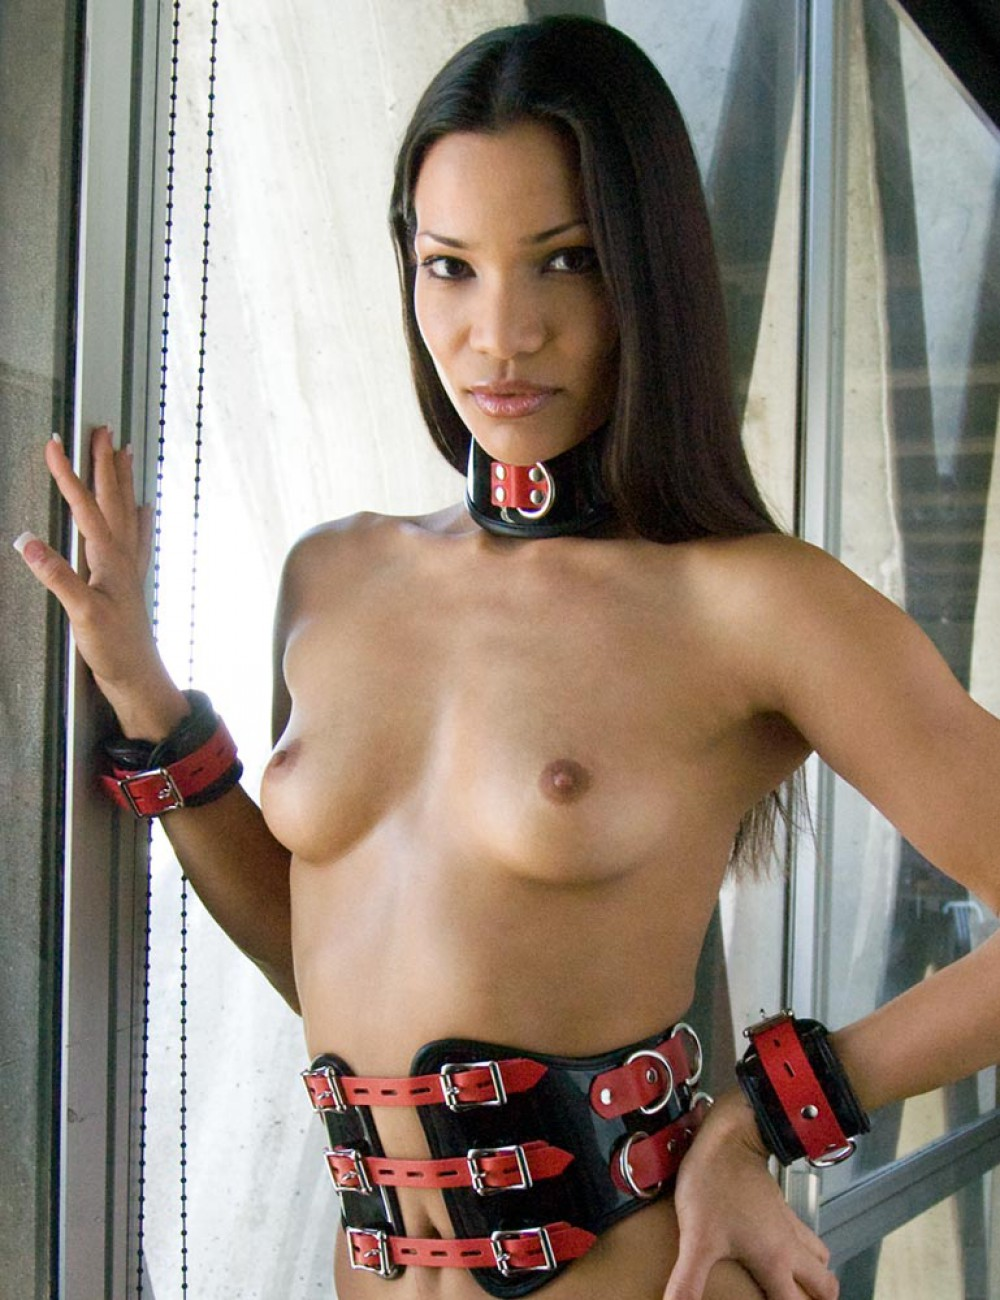 Firecracker Patent Leather Wrist Restraints (R)